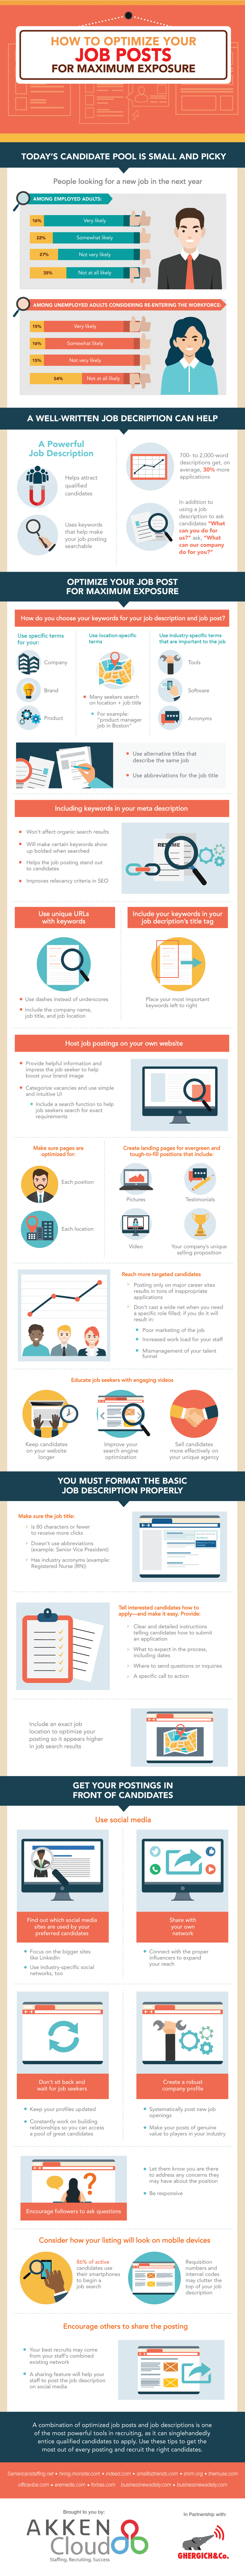 Infographic looks at digital recruitment trends